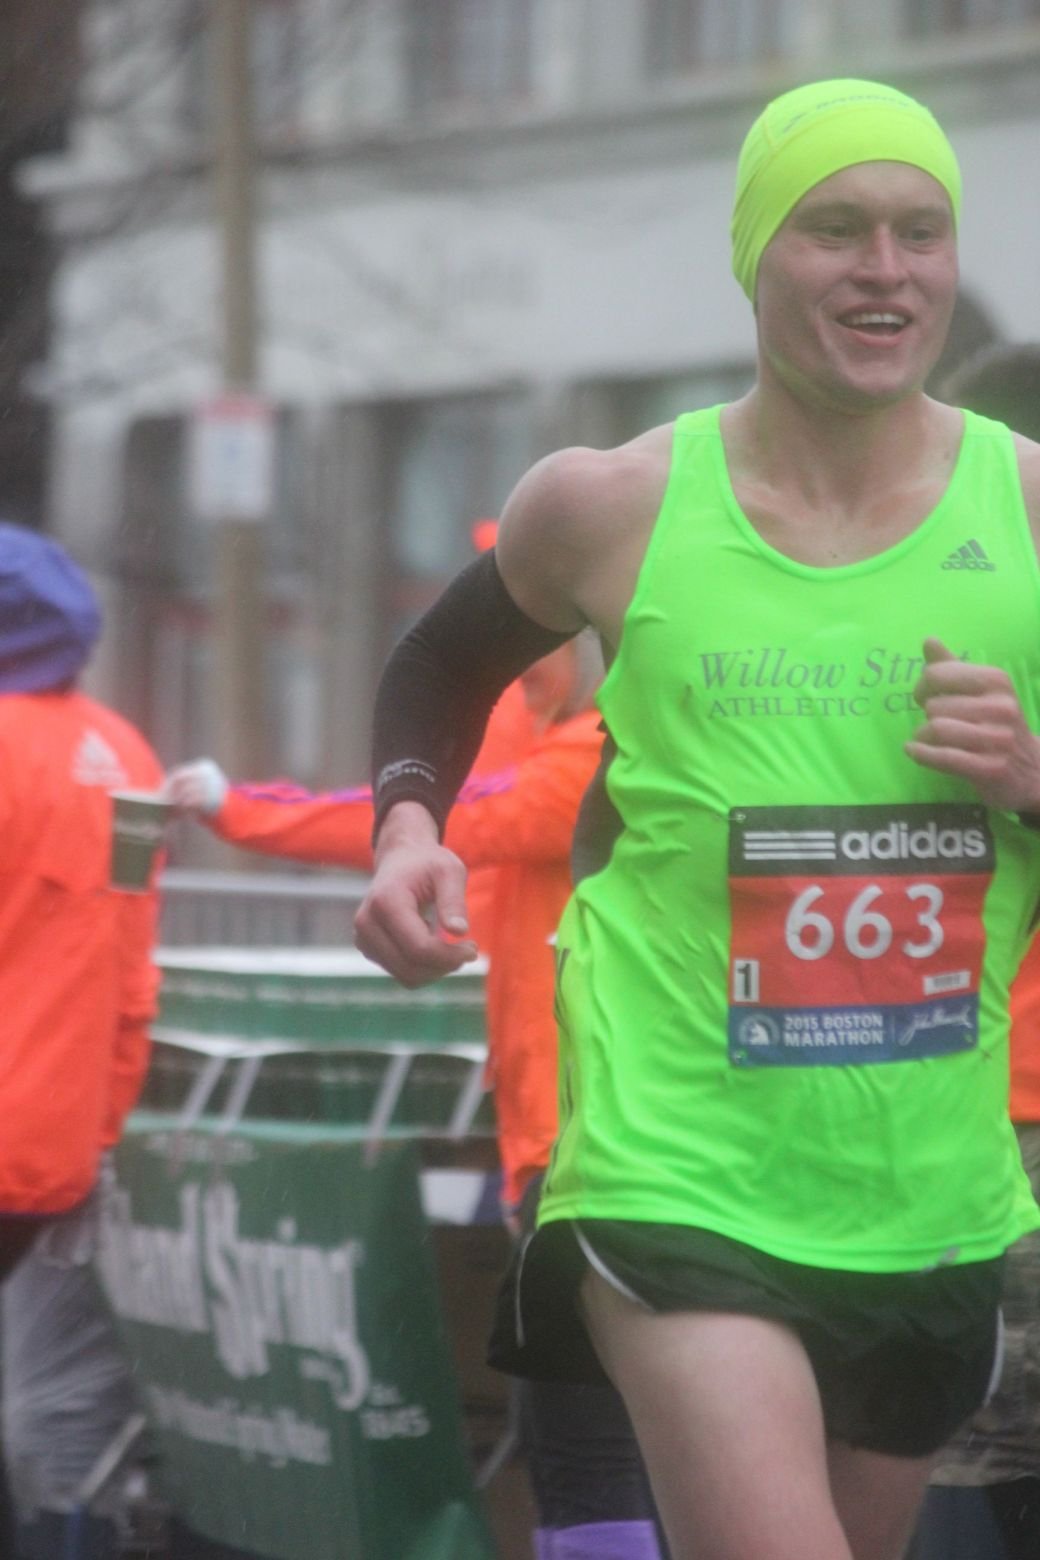 boston marathon april 20 2015 racer number 663